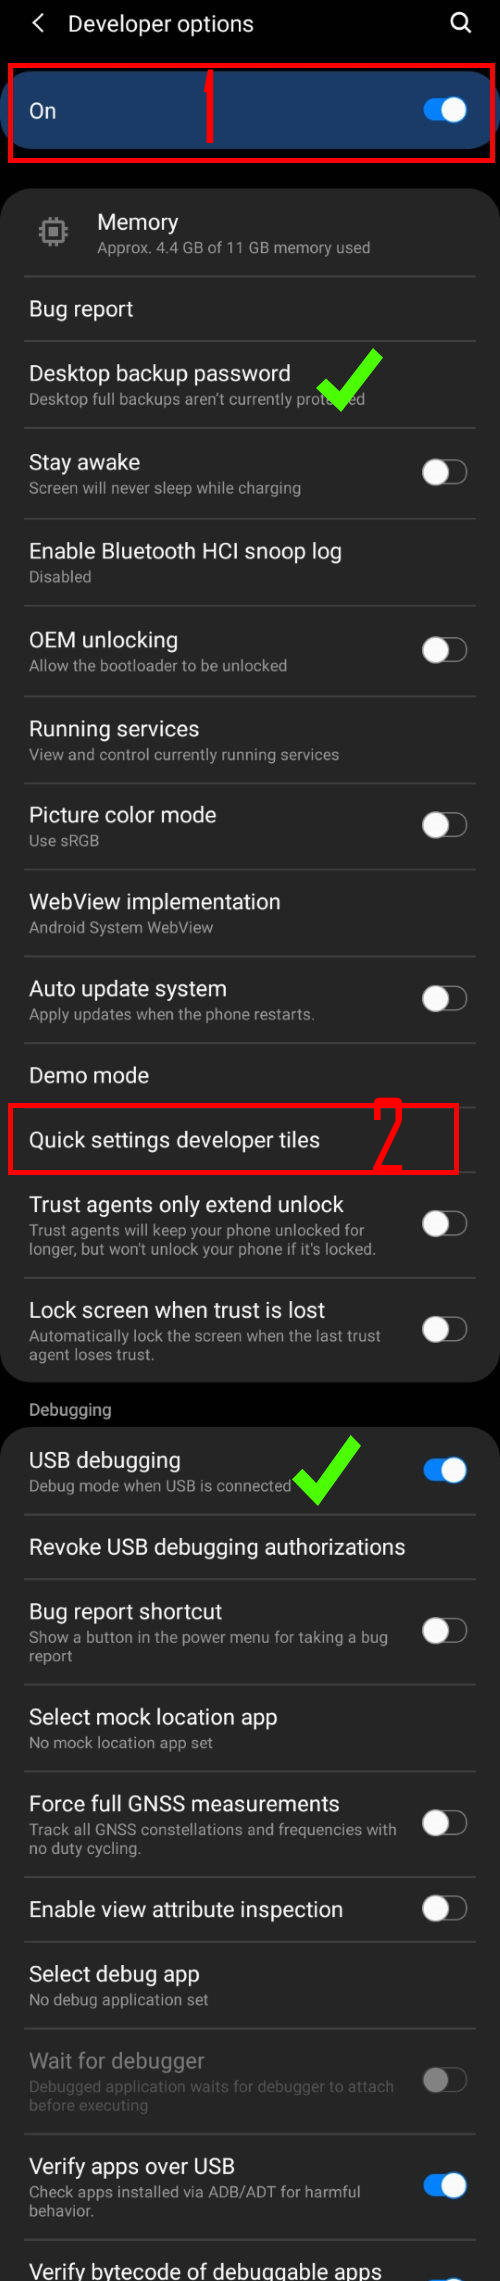 complete list of Galaxy S20 developer options (Android 10) part 1/4